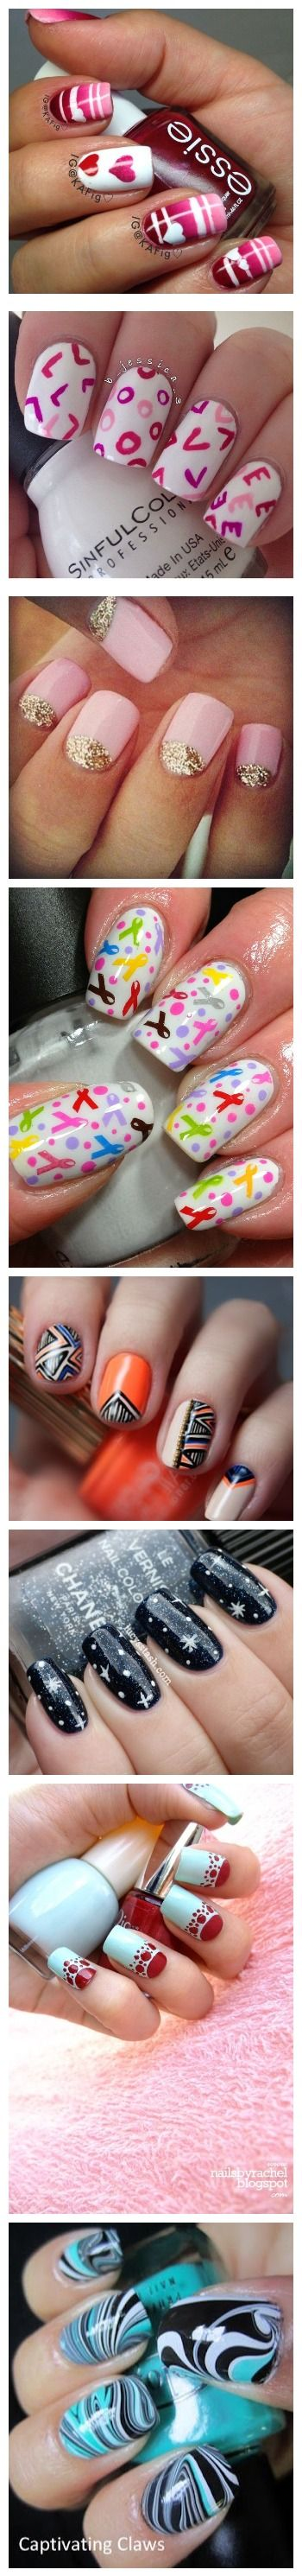 Nail Art Ideas and Designs...love this idea..pretty!!!